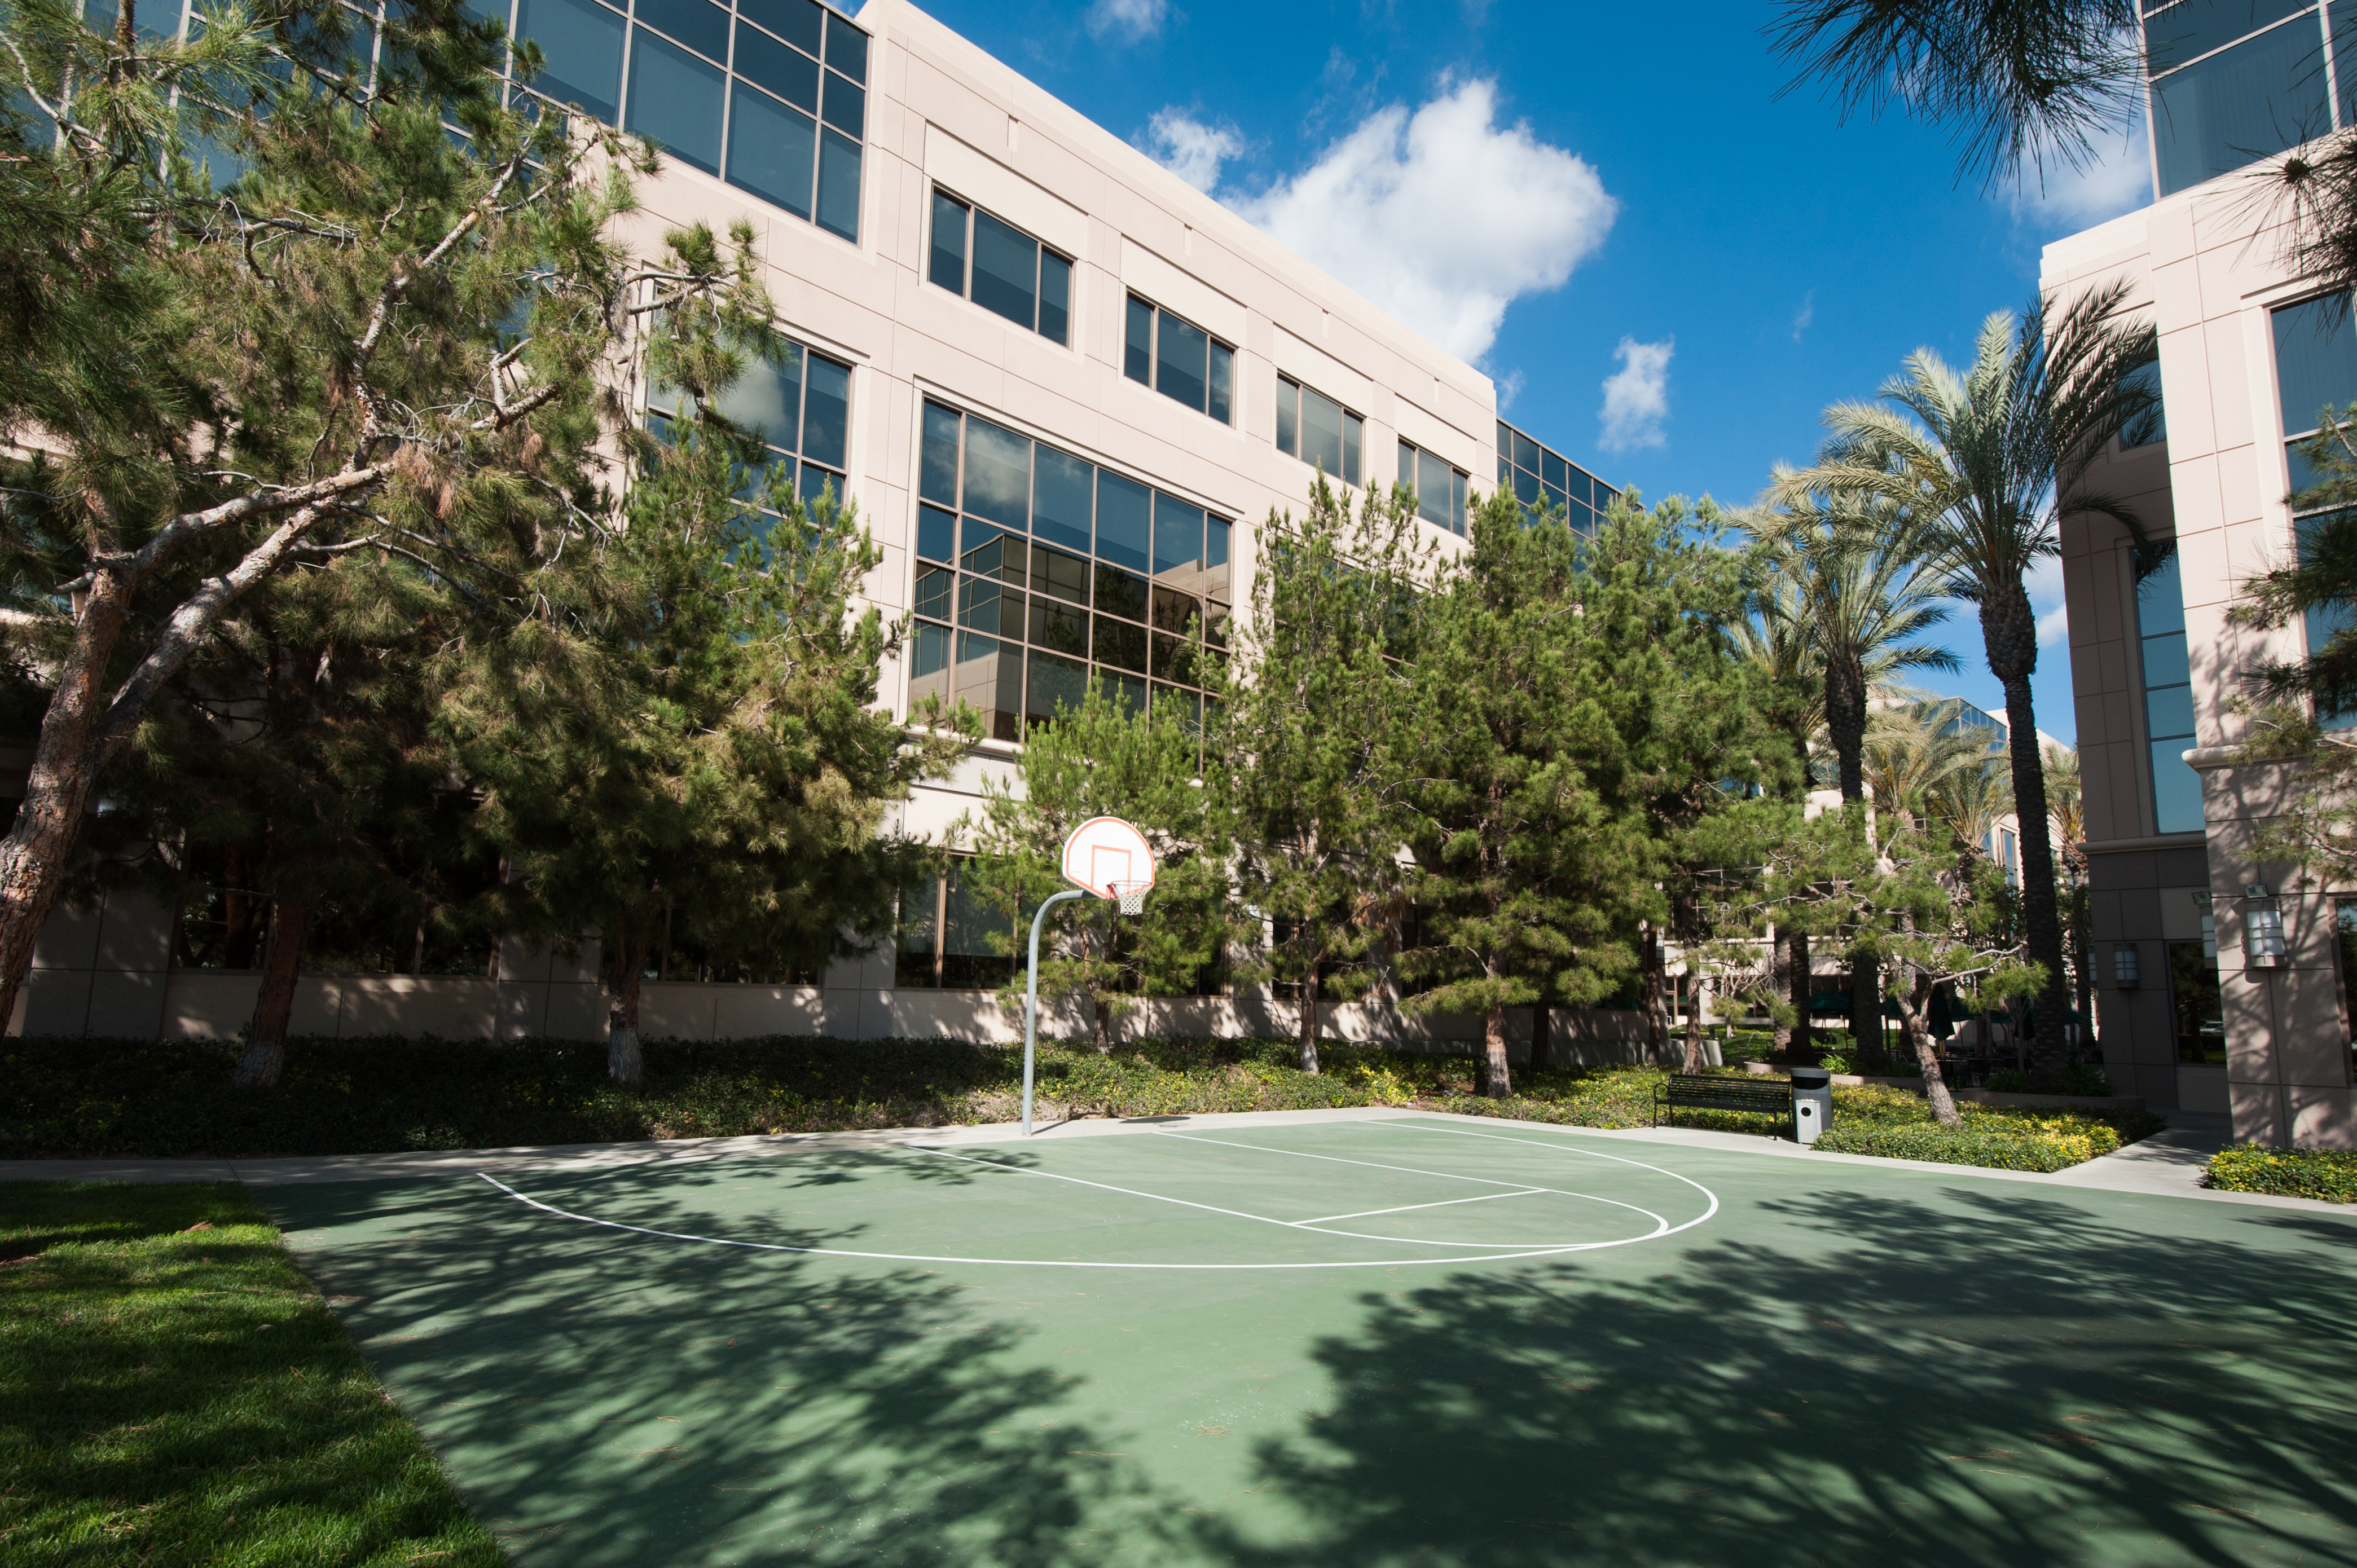 On-Site Basketball Court